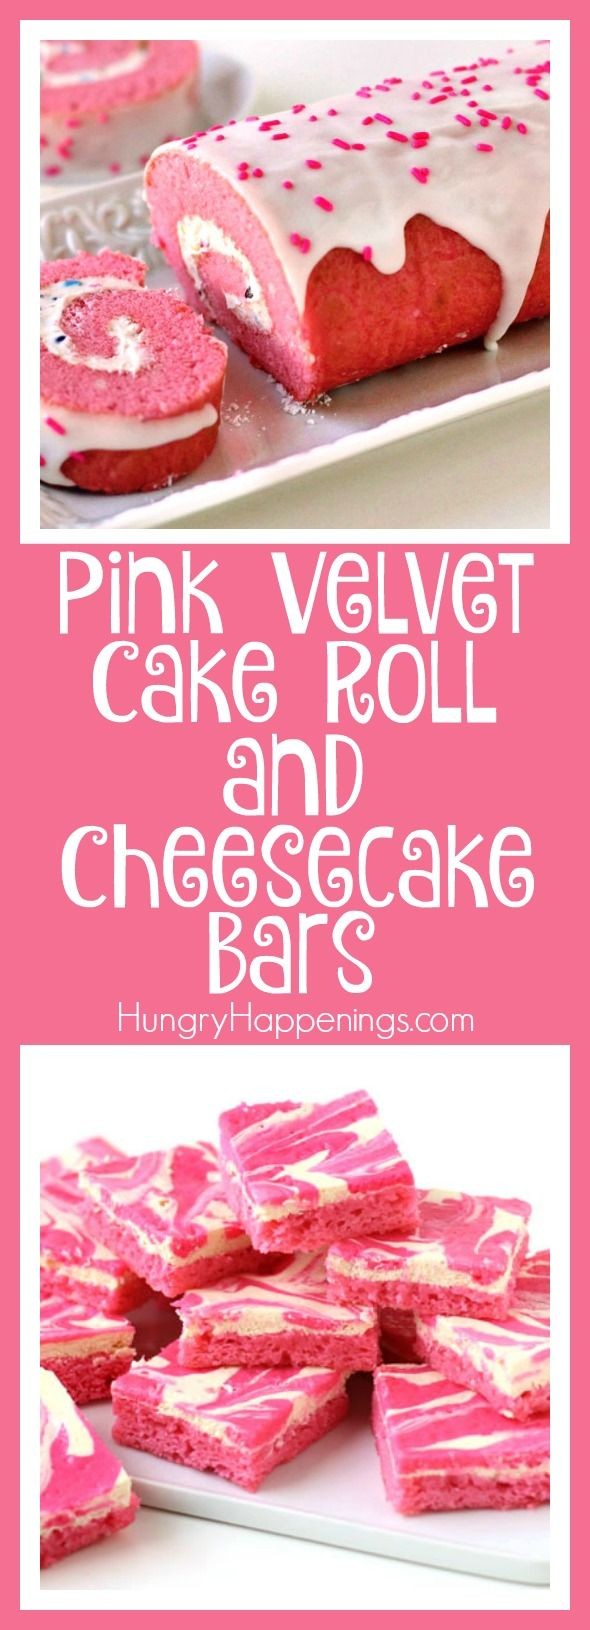 If pink is your color, you are going to fall in love with all these pink desserts including a Pink Velvet Cake Roll and Pink Velvet Cheesecake Bars. These pink desserts will sweeten up your Valentine's Day, brighten up a baby shower, or liven up a pot luck.